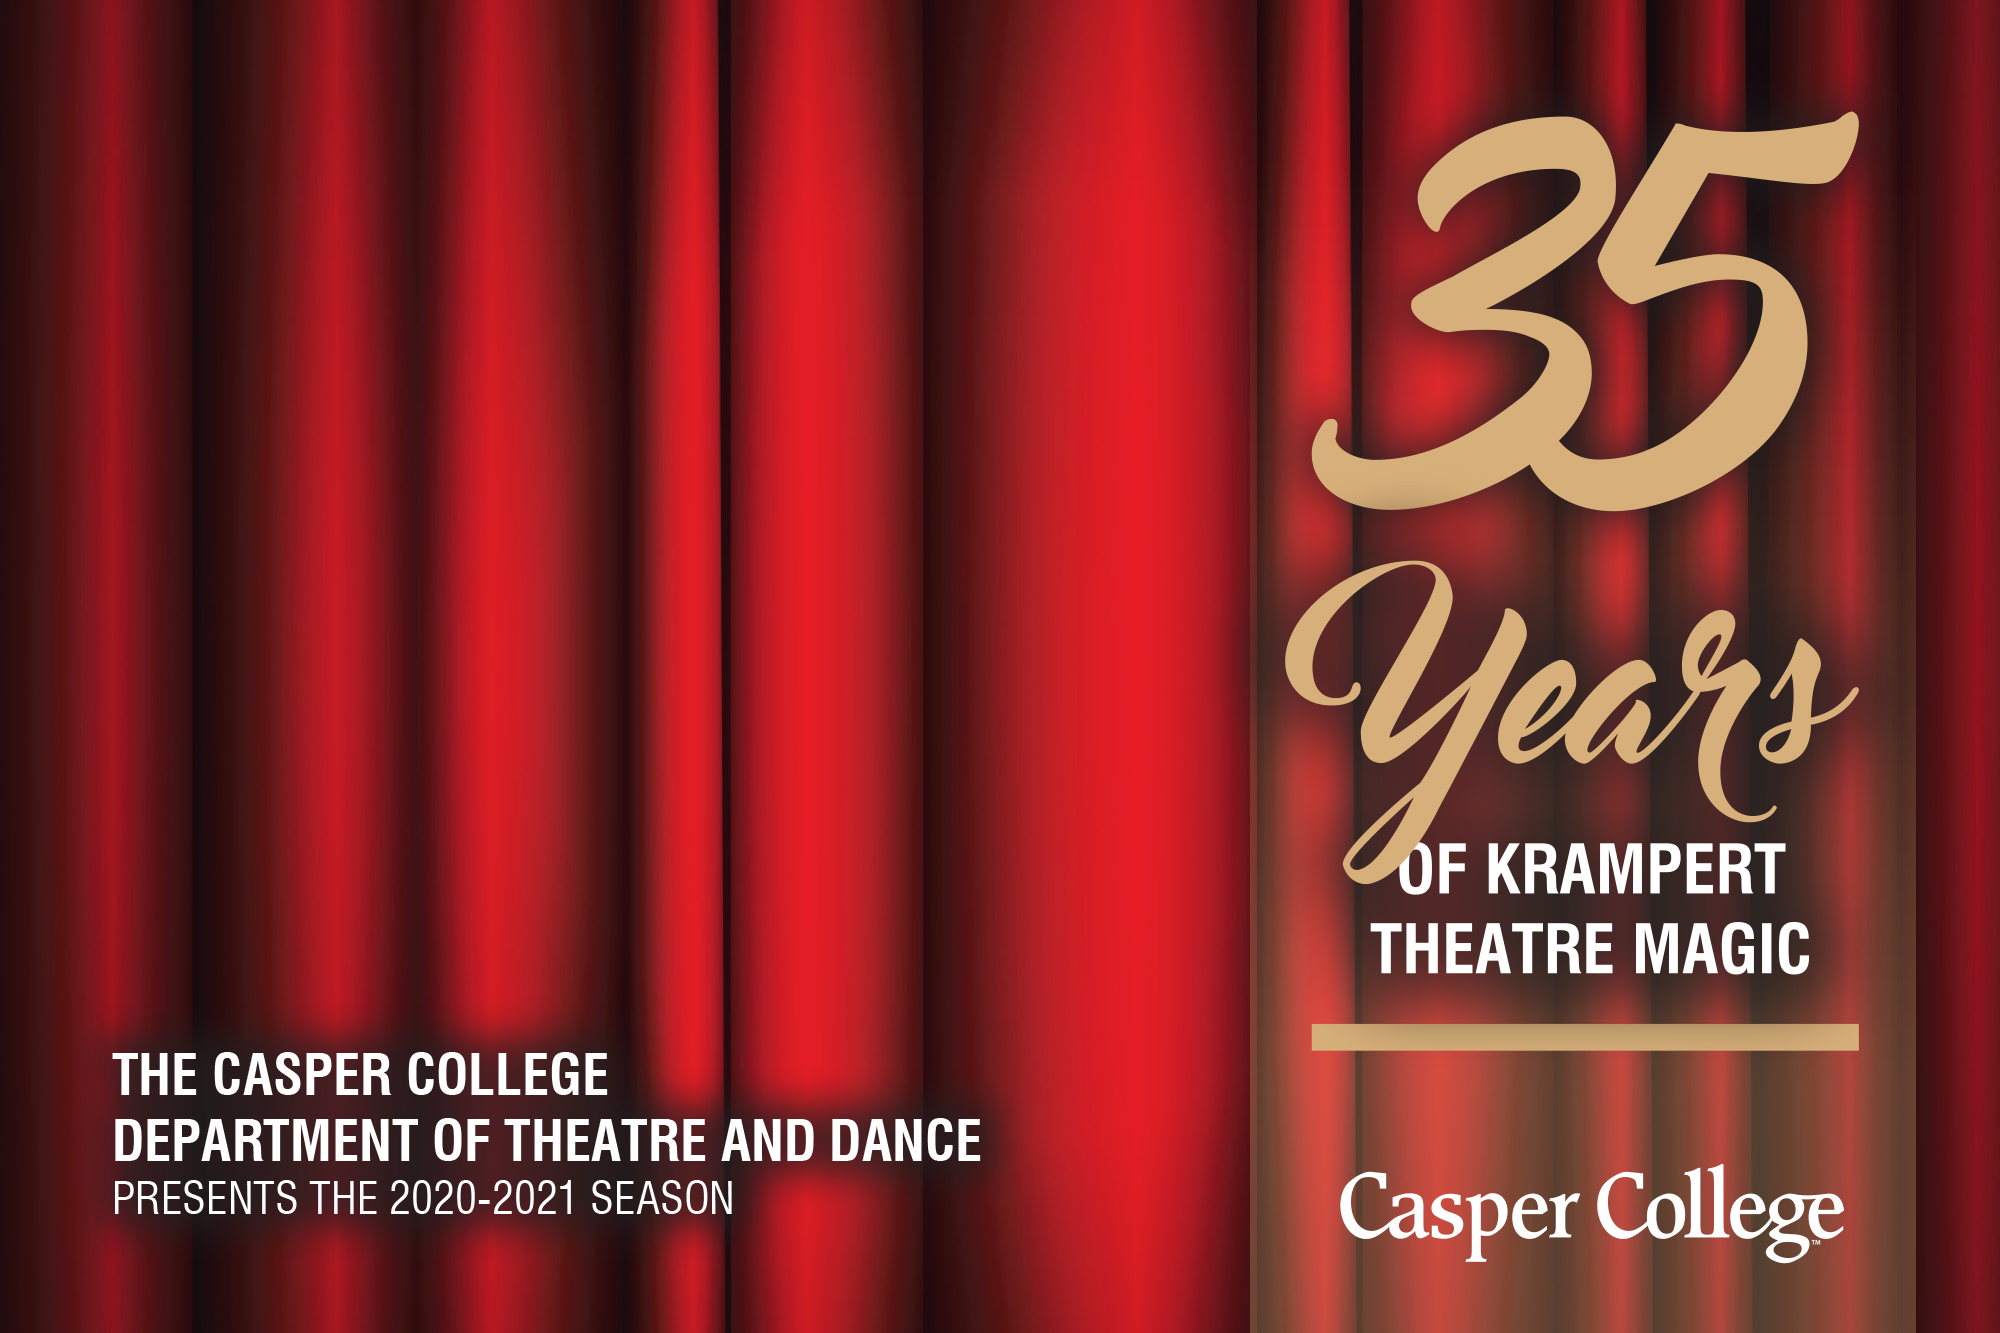 Image of red stage curtains with the words 35 Years of Krampert Theatre Magic.